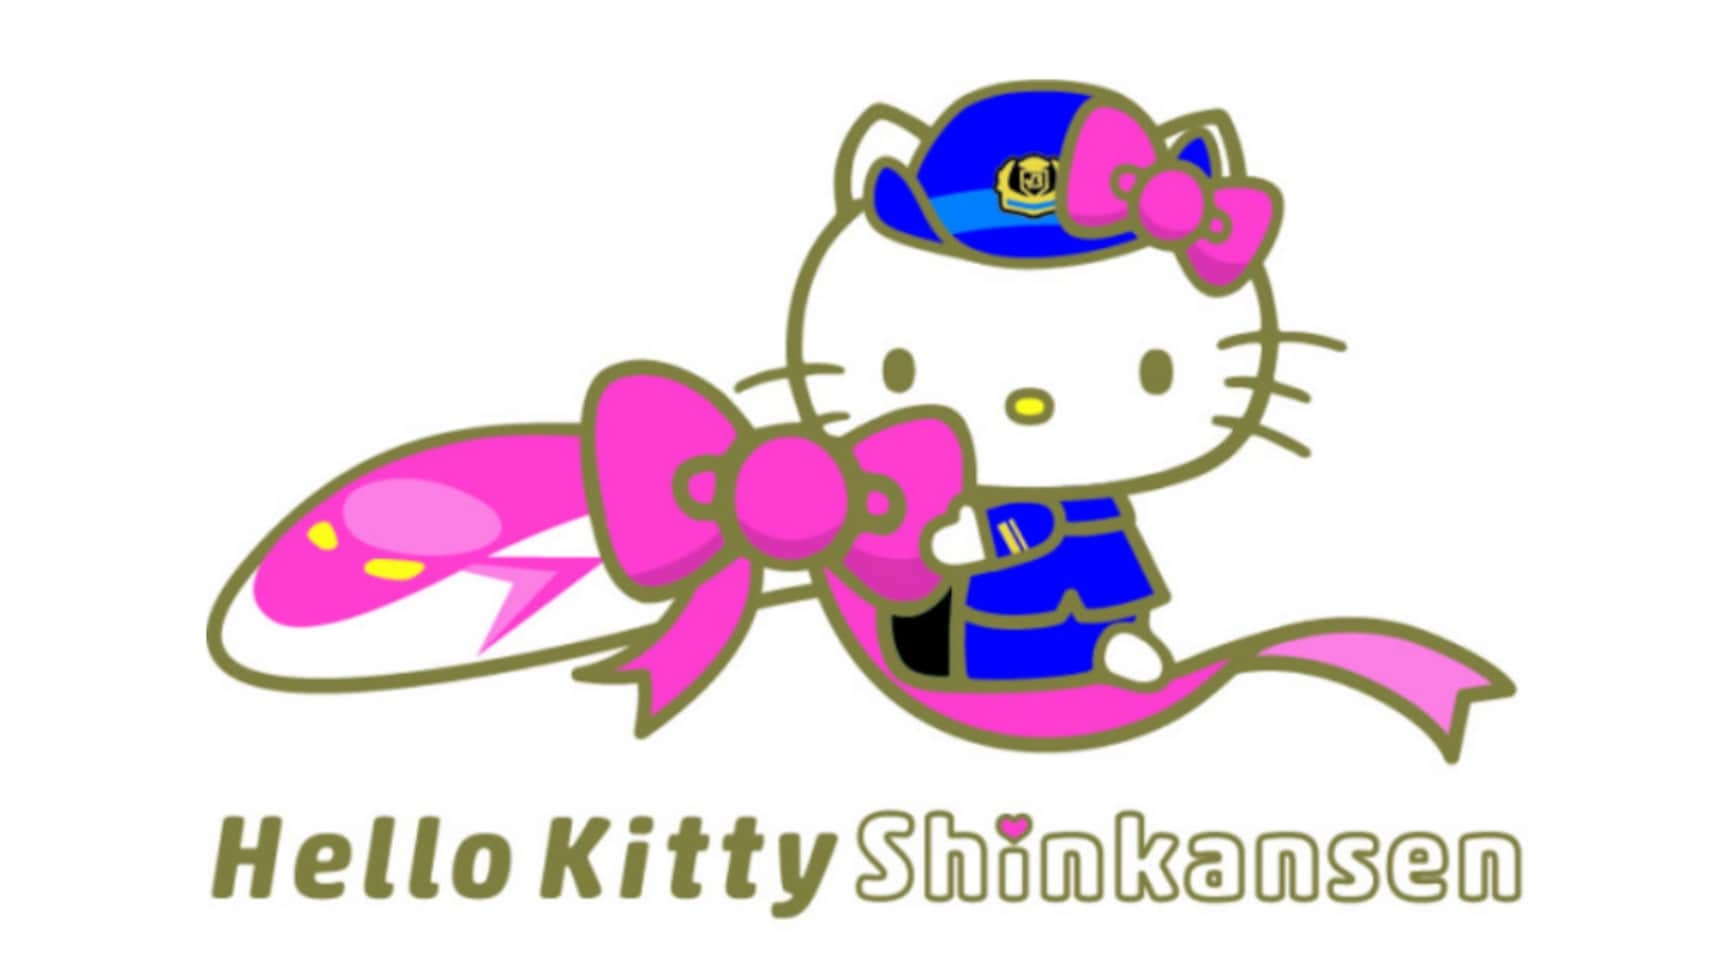 Get a Glimpse of the Hello Kitty Shinkansen!